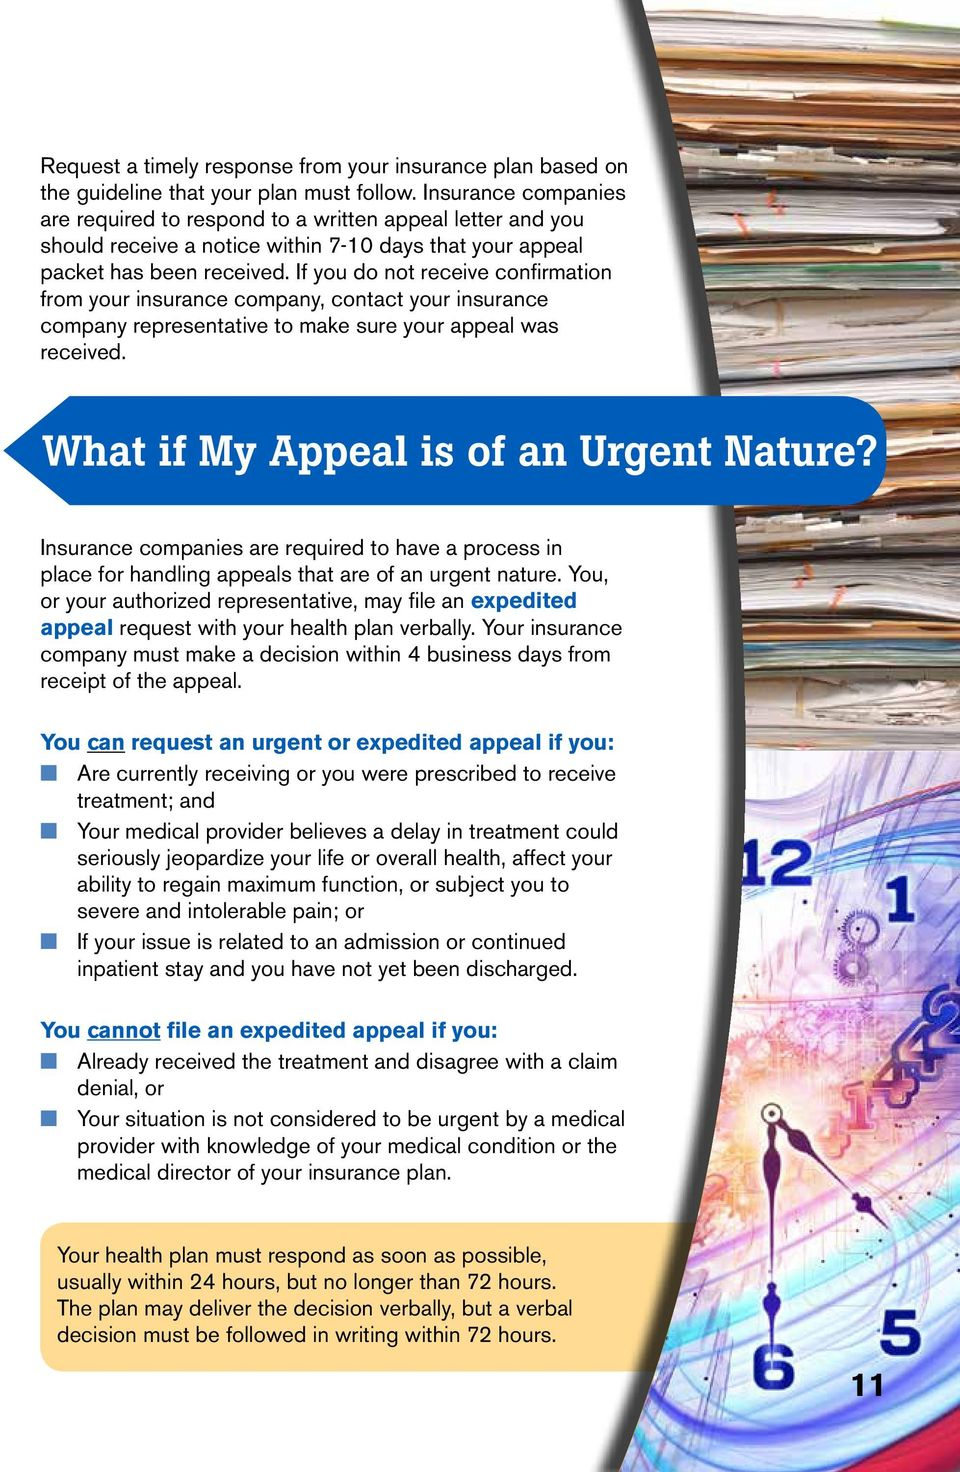 If you do not receive confirmation from your insurance company, contact your insurance company representative to make sure your appeal was received. What if My Appeal is of an Urgent Nature?